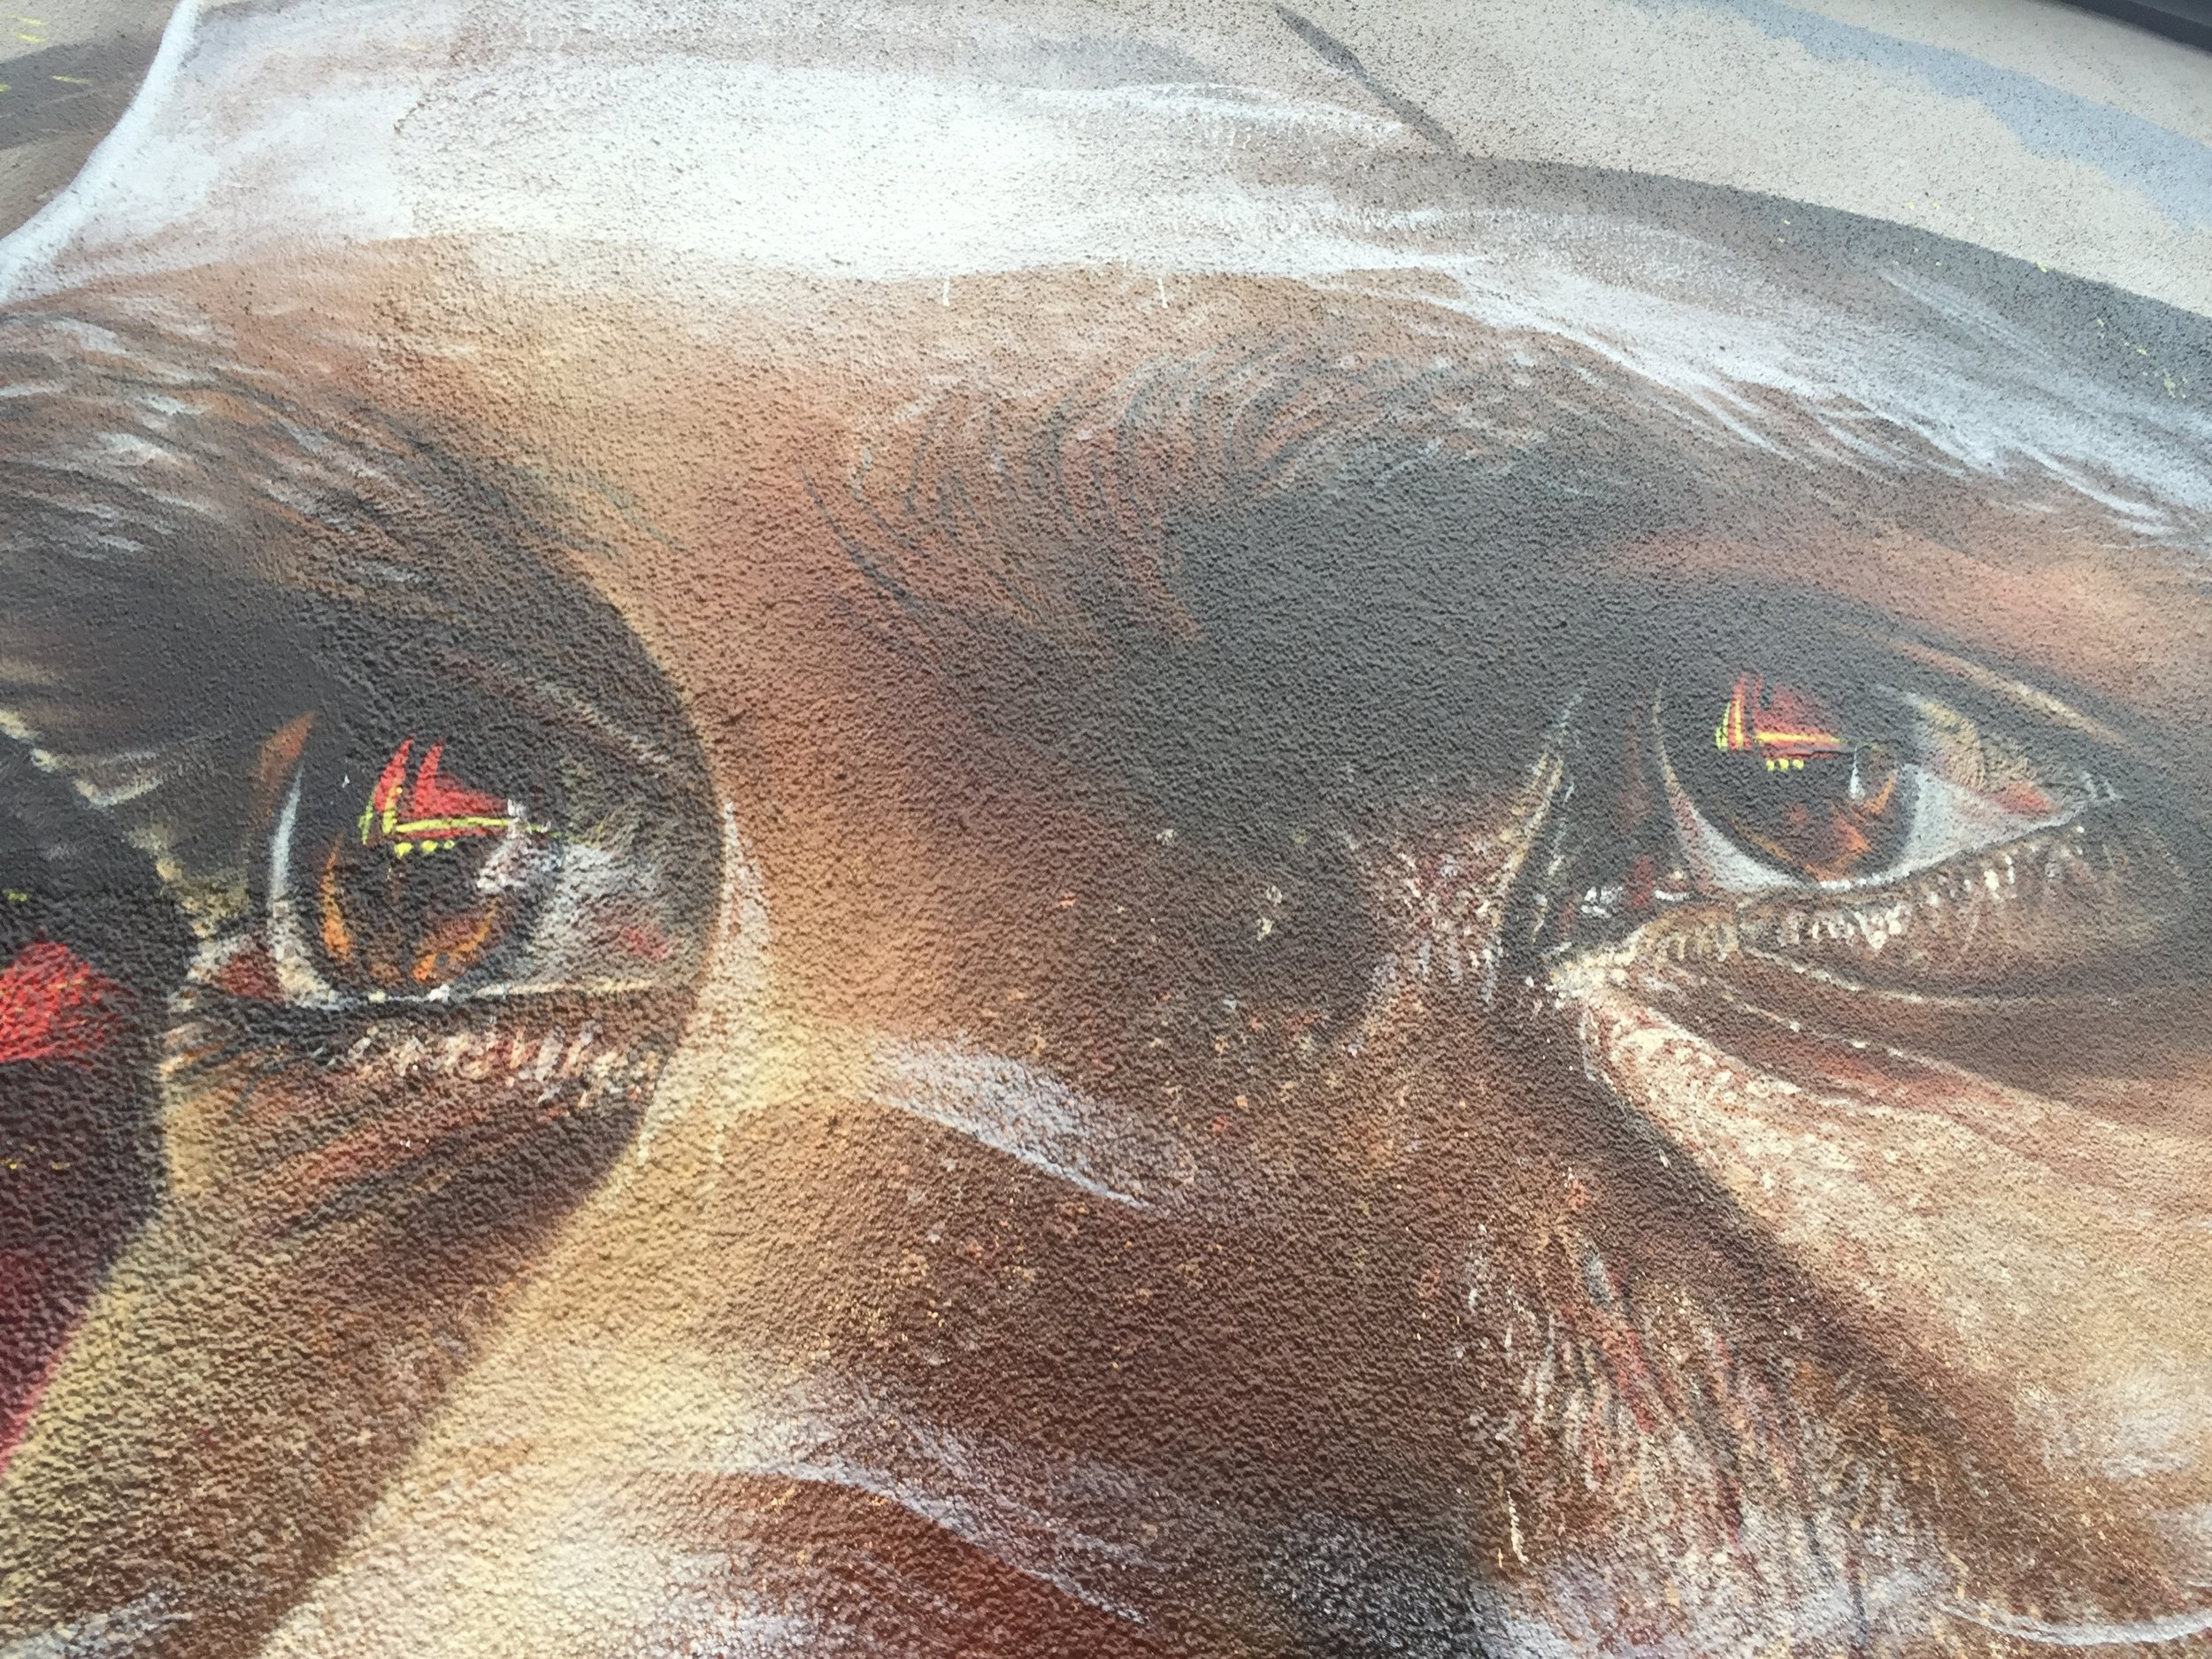 Close up of one of the Adnate murals found in Melbourne.